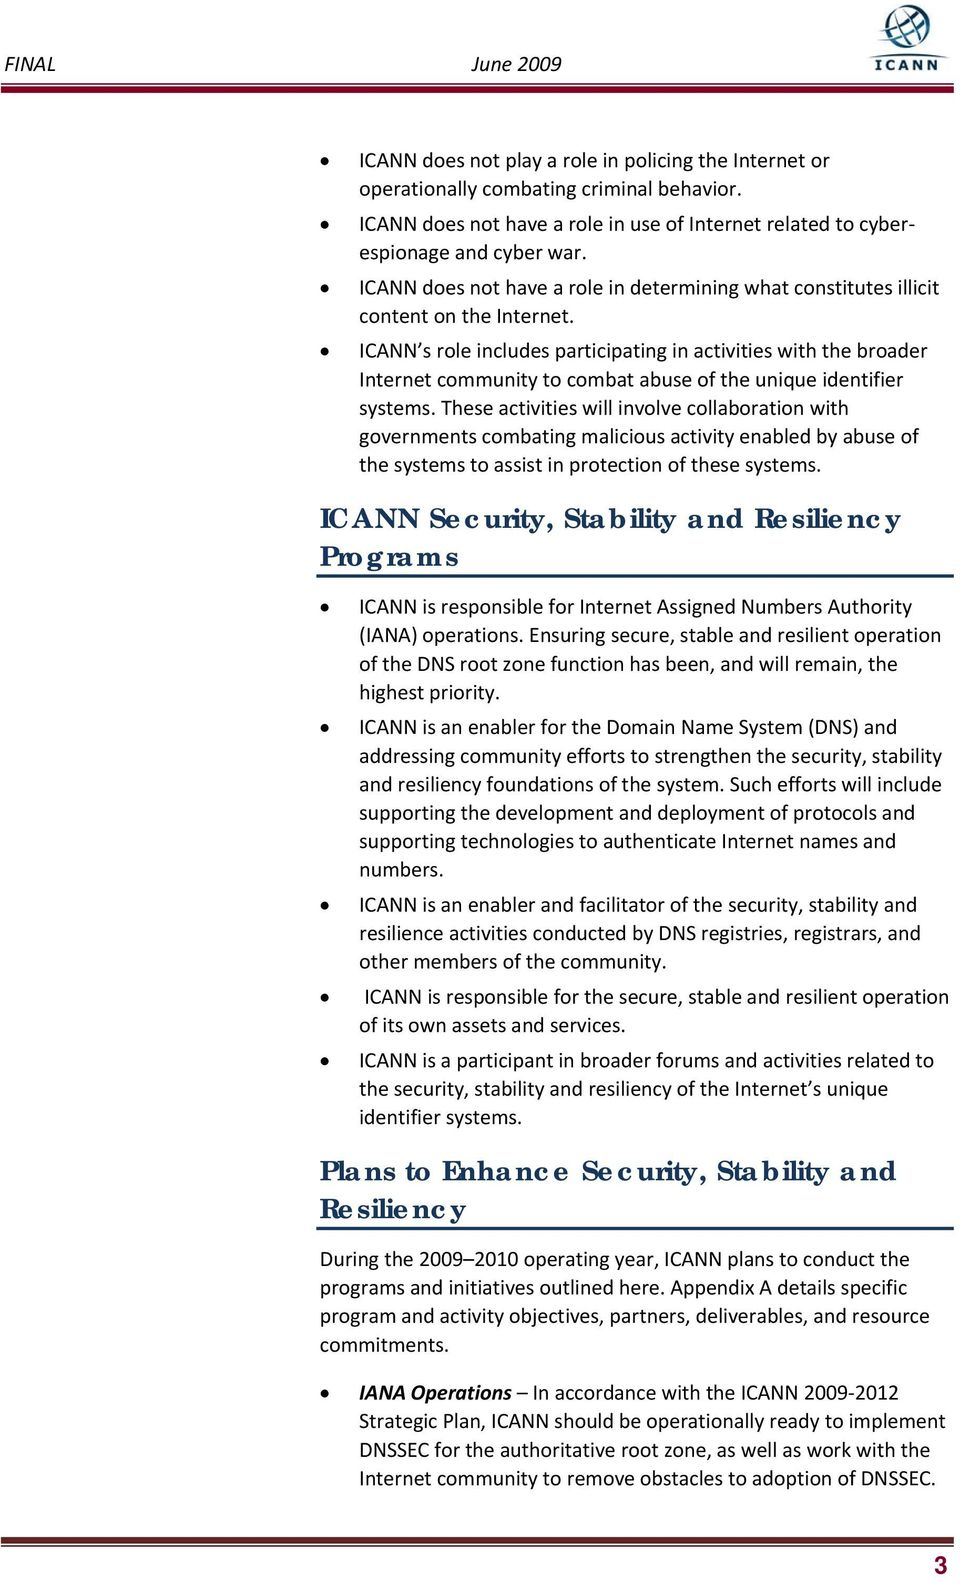 ICANN s role includes participating in activities with the broader Internet community to combat abuse of the unique identifier systems.